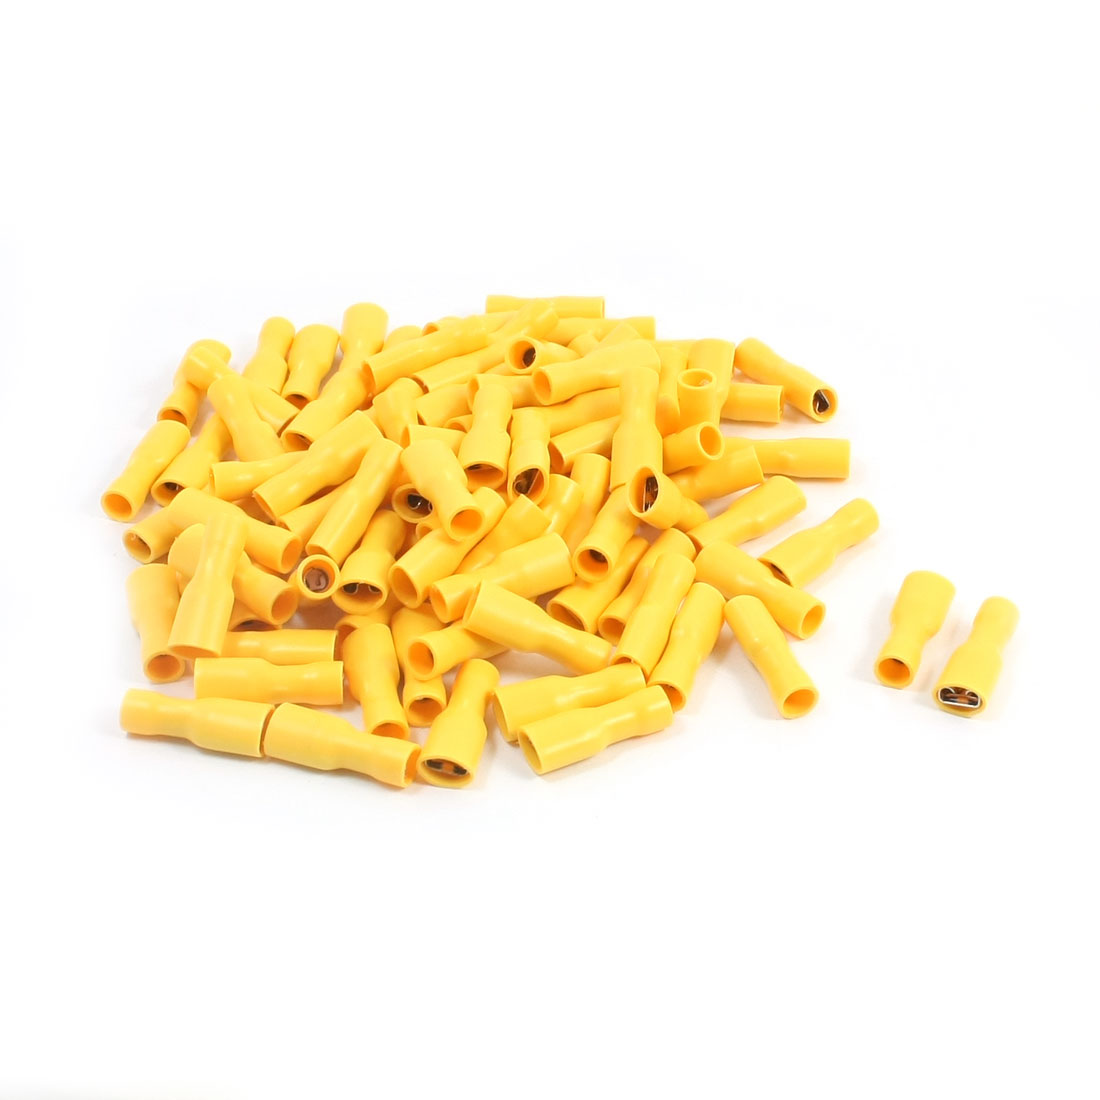 100 Pcs 12-10 AWG Yellow PVC Sleeve Fully Insulated Crimp Terminals Cable Lug